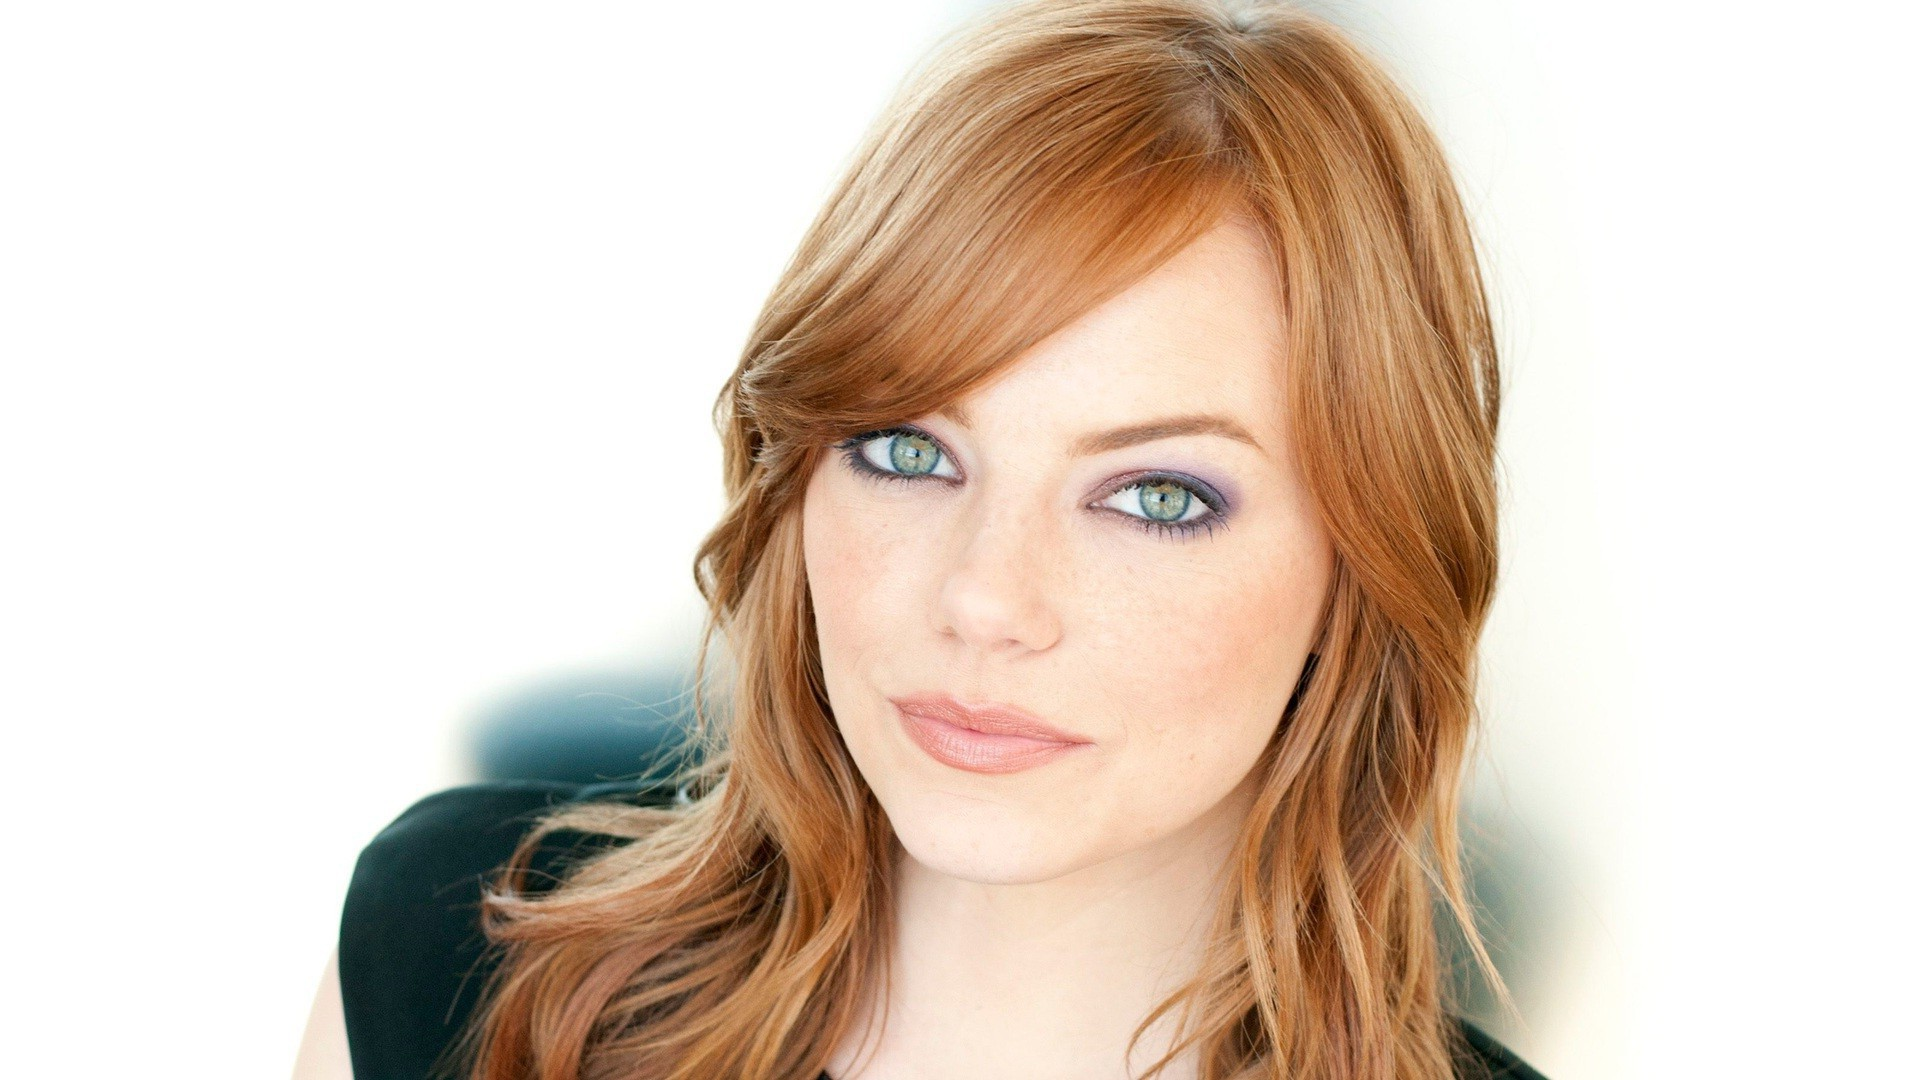 Emma Stone Wallpapers Images Photos Pictures Backgrounds